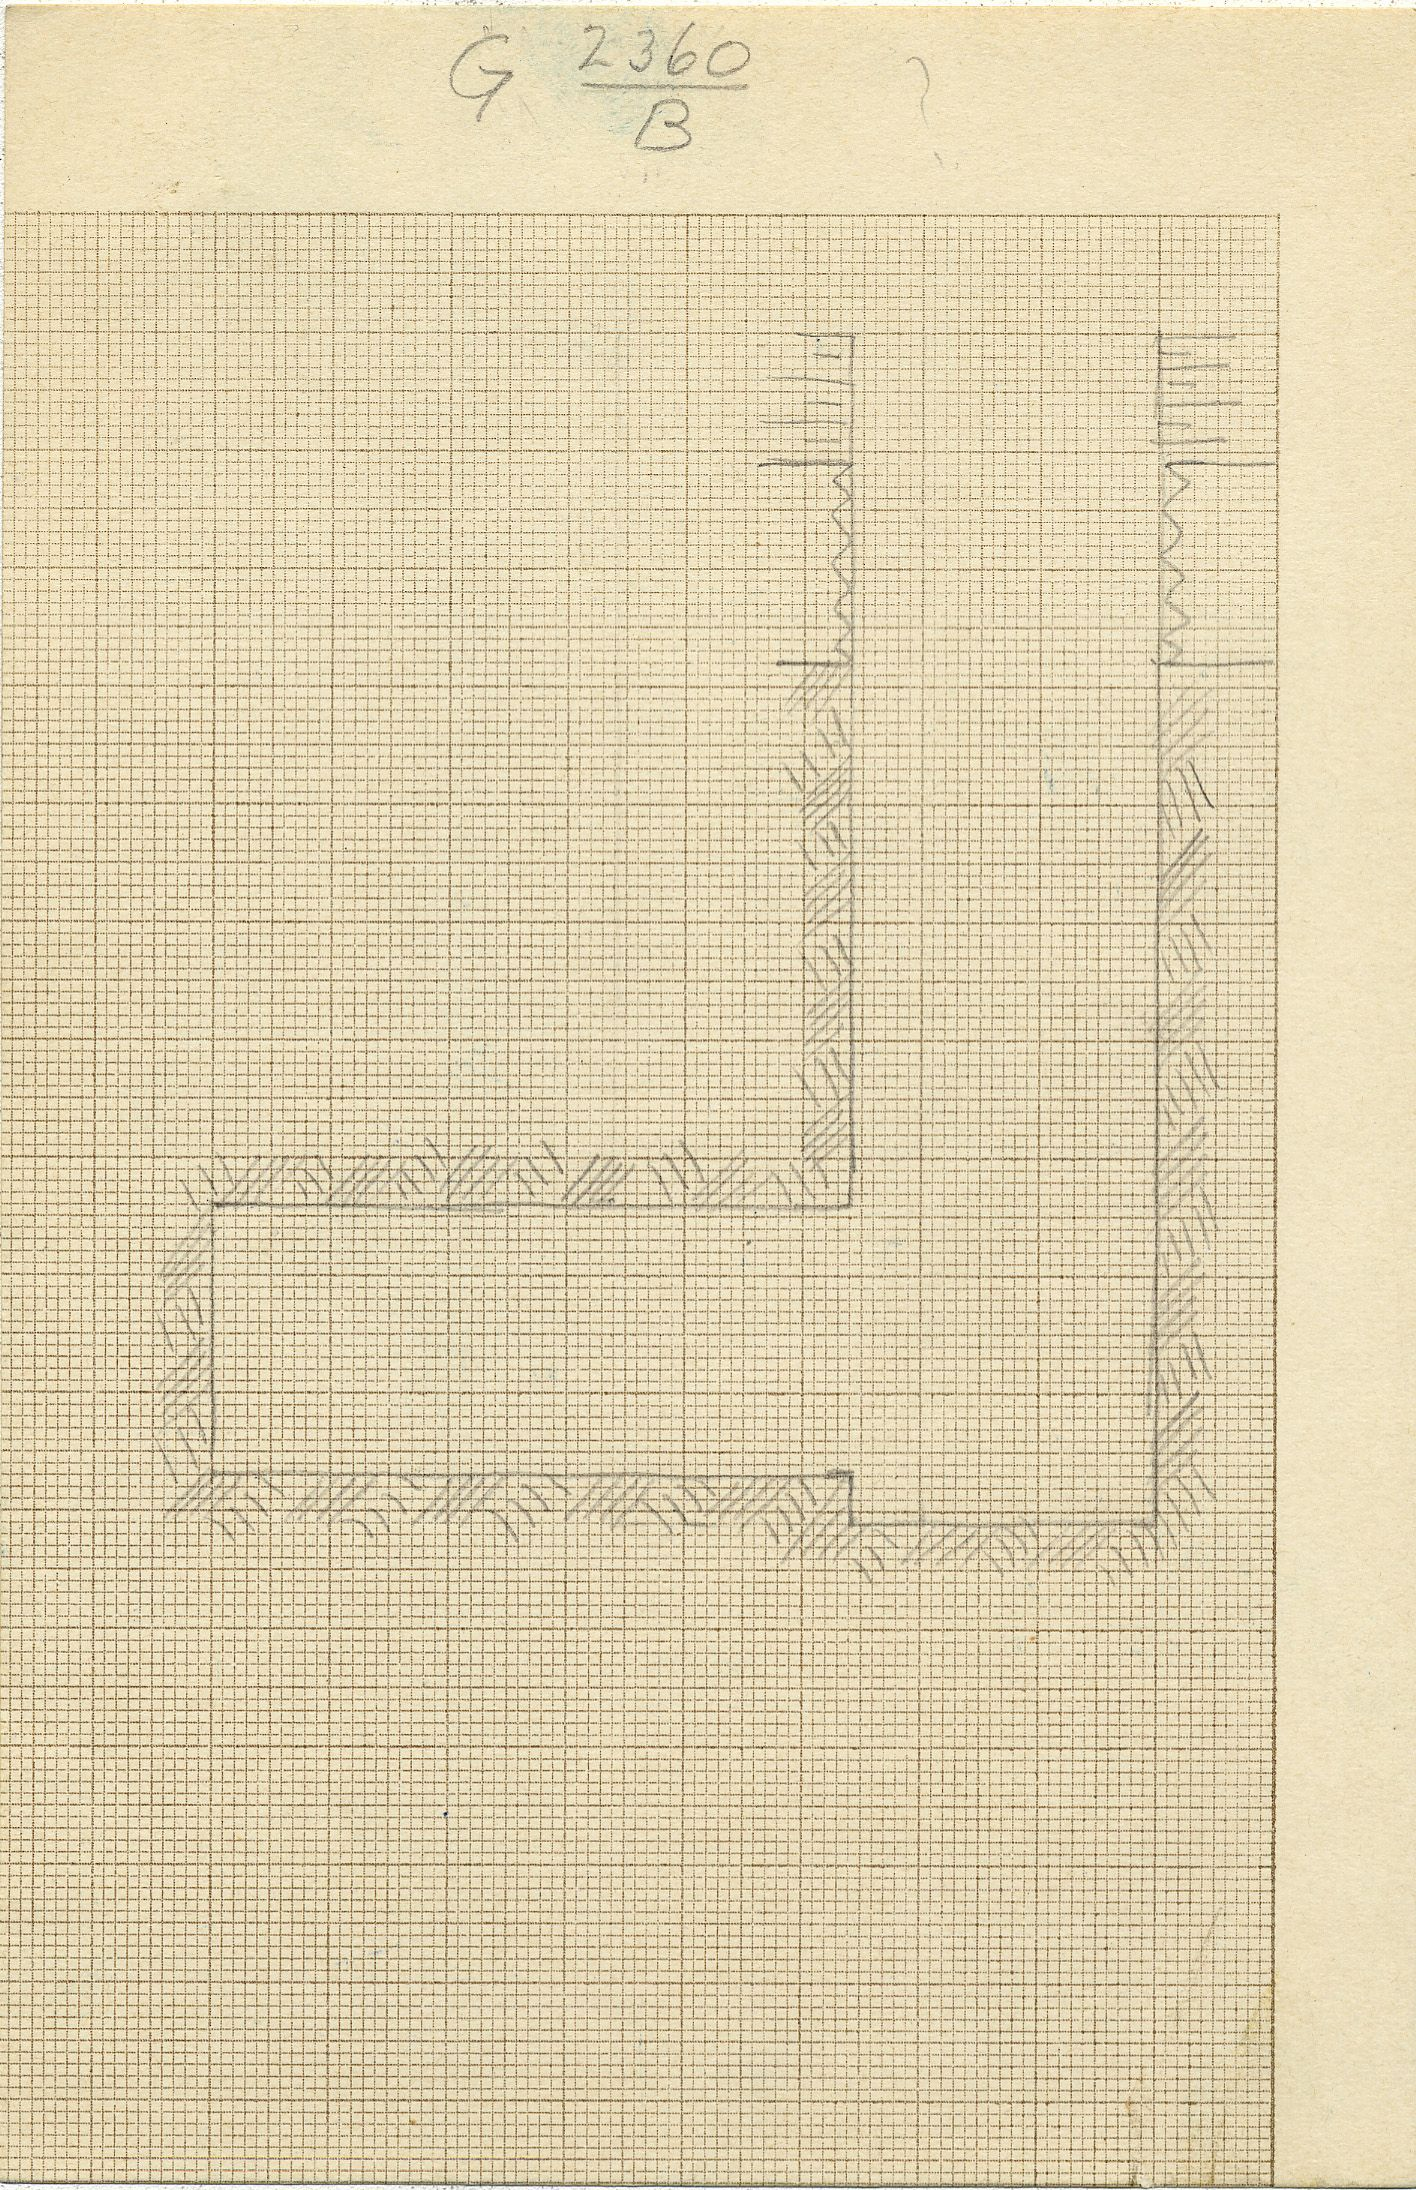 Maps and plans: G 2360, Shaft B